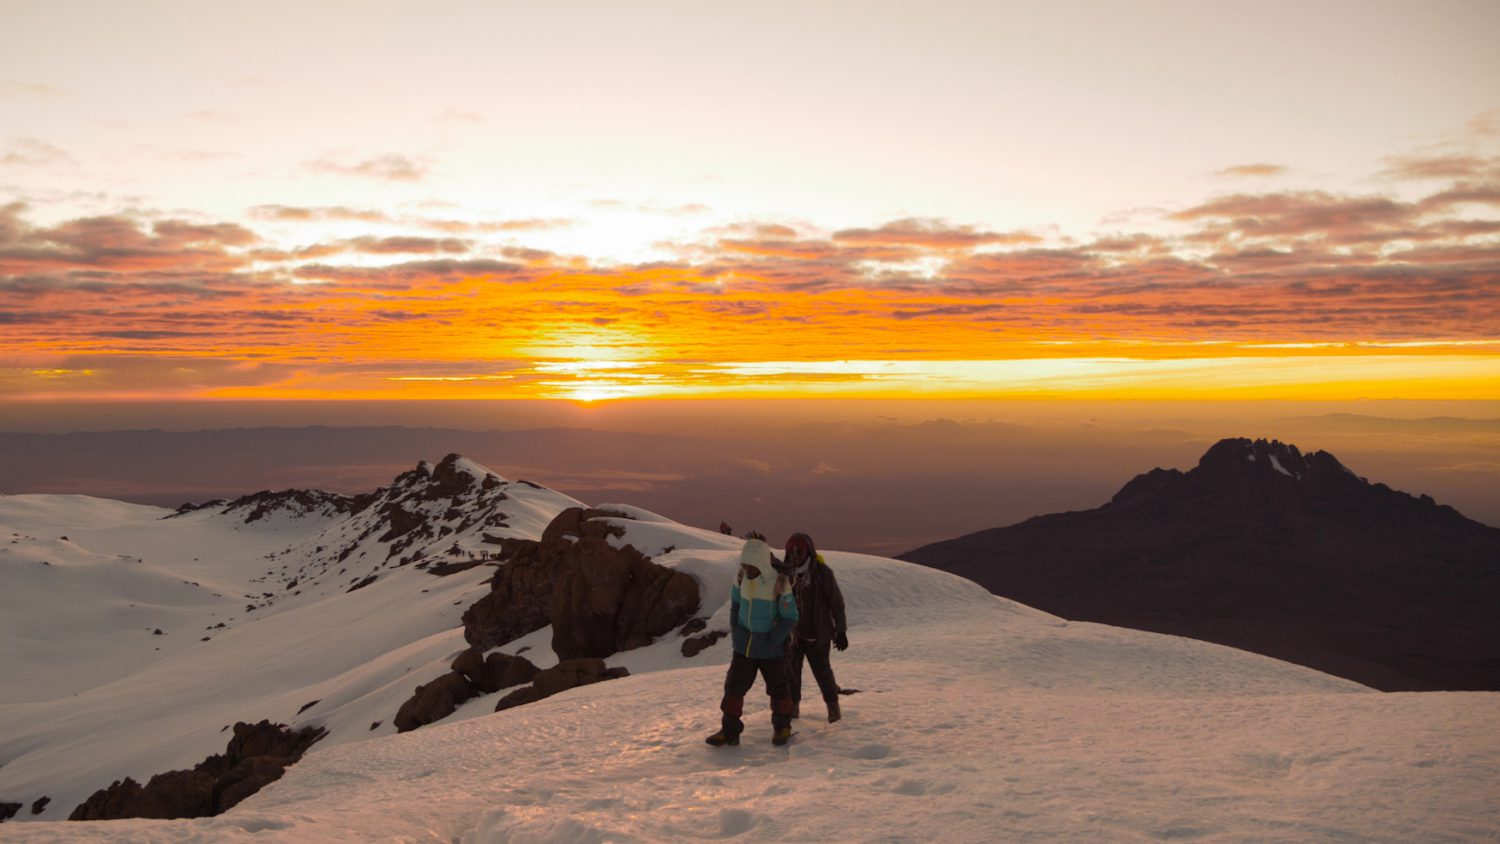 Kilimanjaro - Our way to the Top!